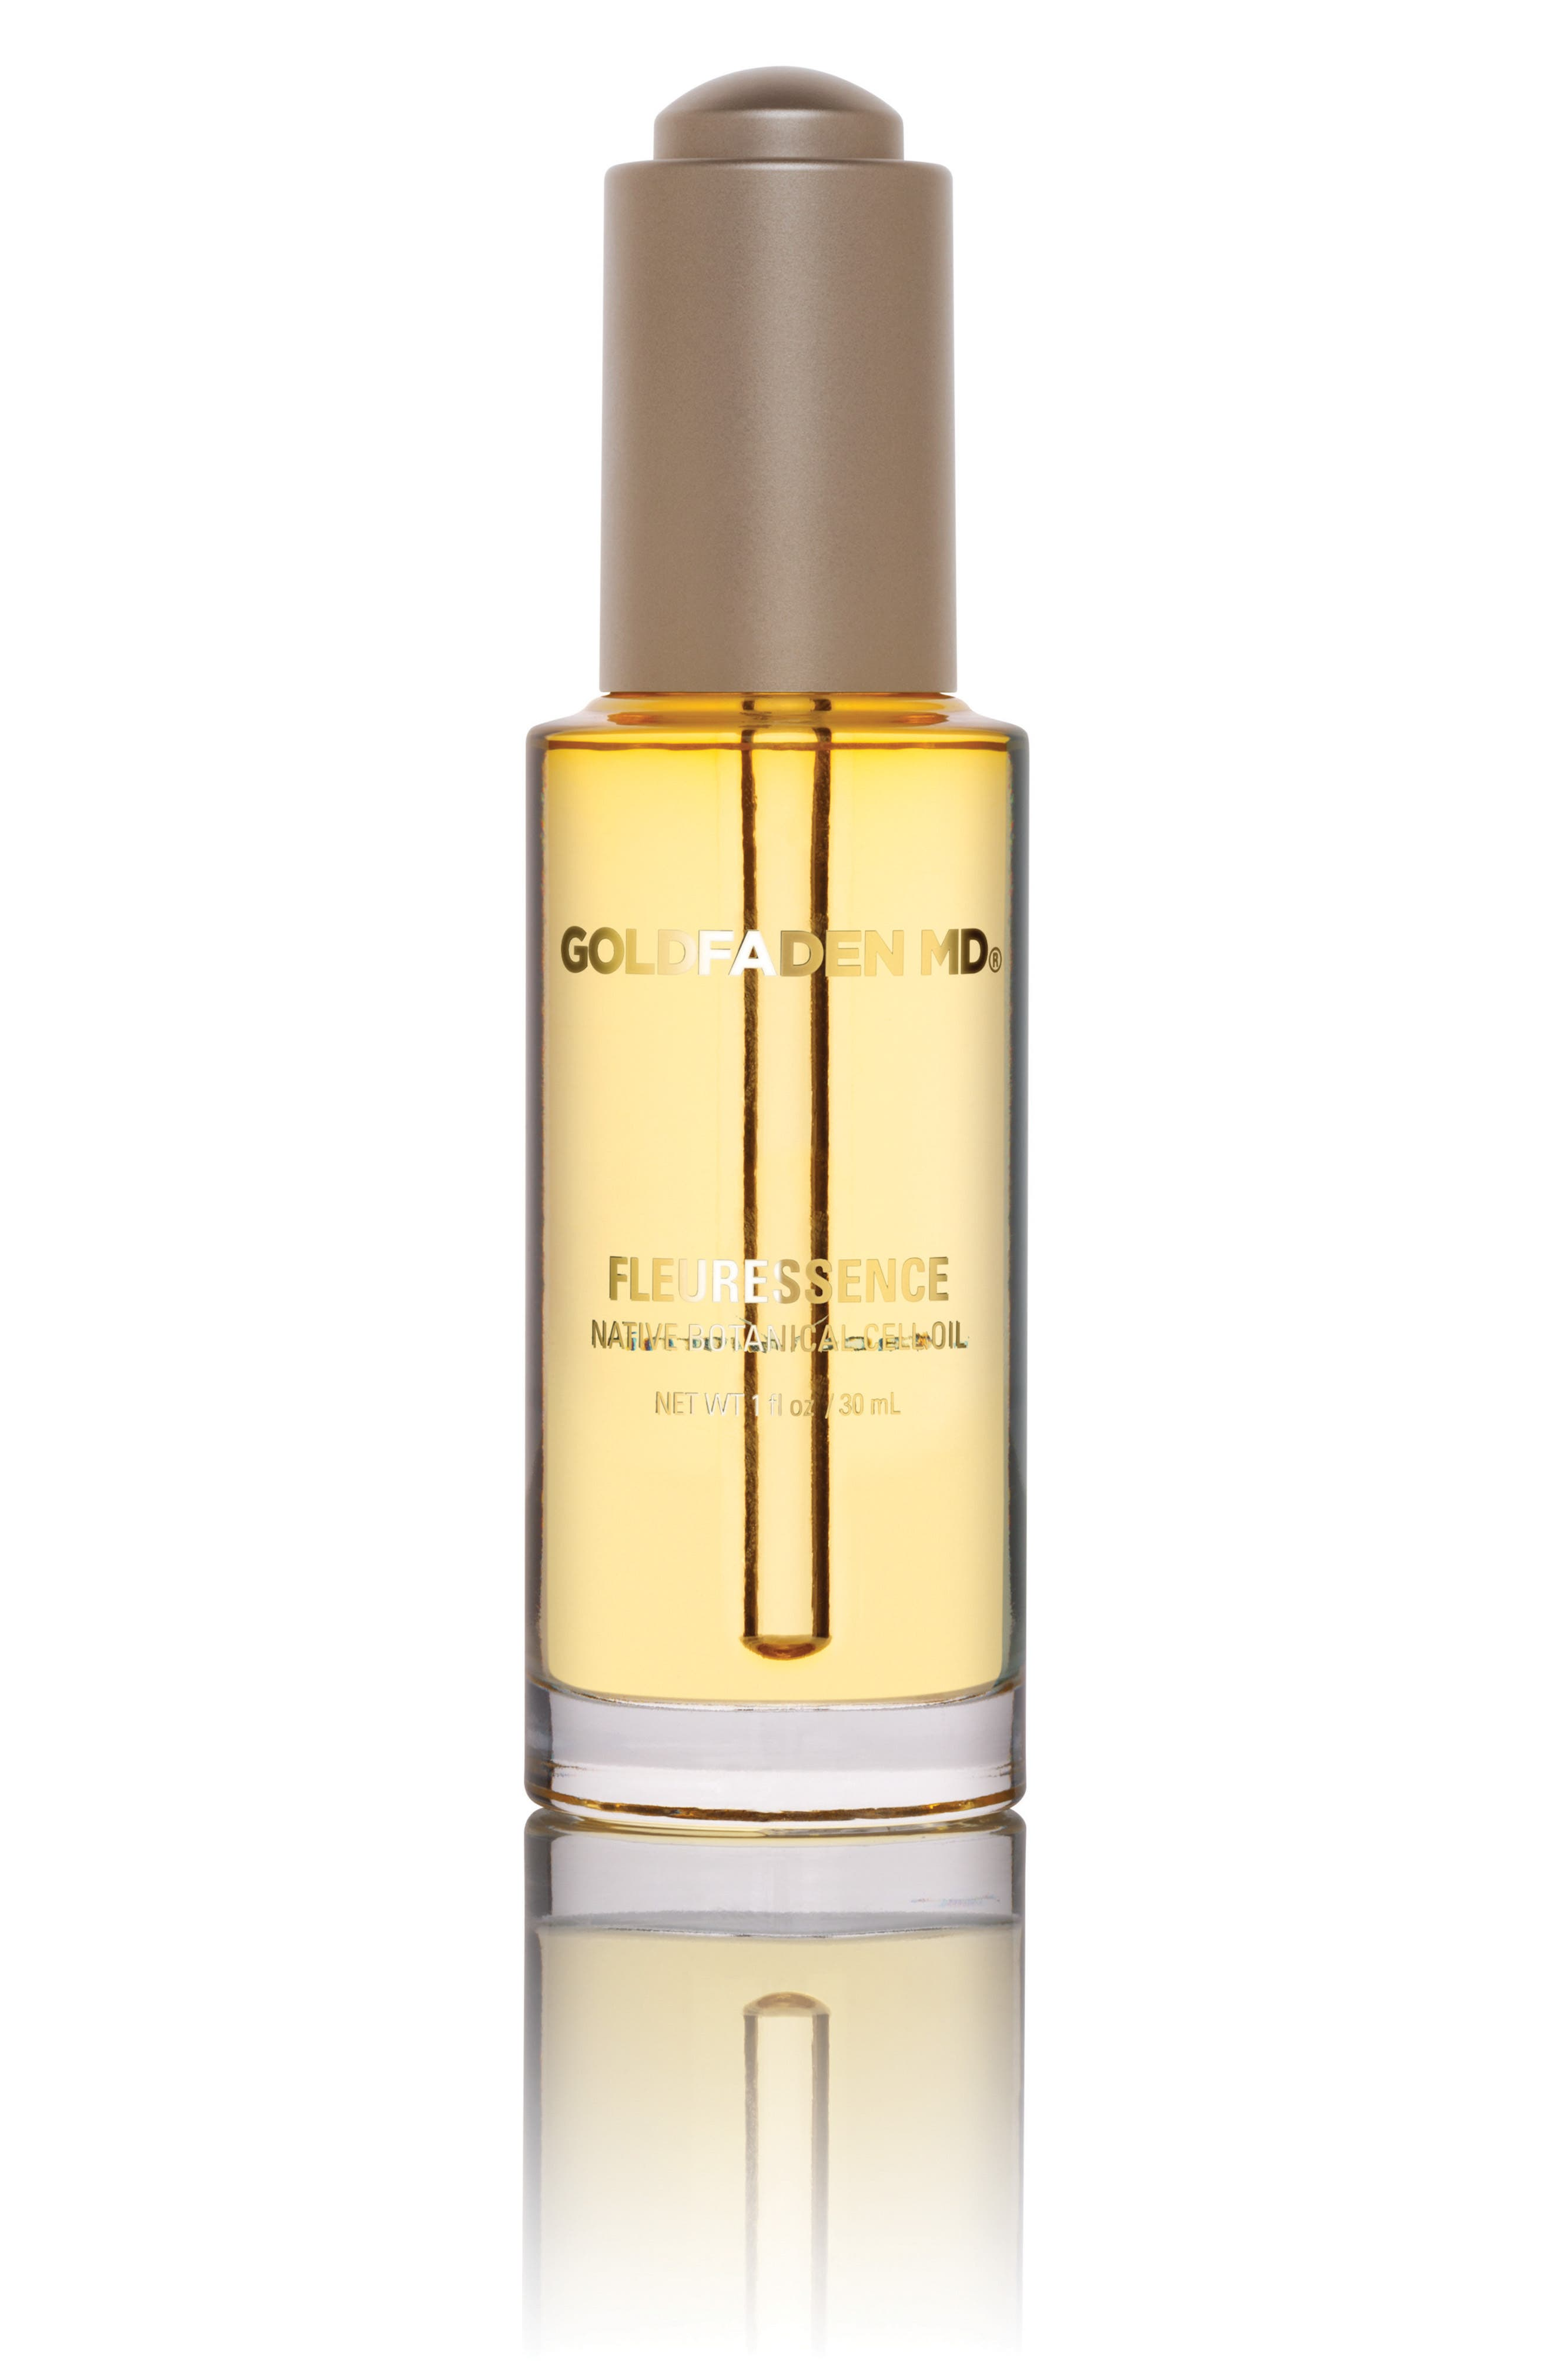 SPACE.NK.apothecary Goldfaden MD Fleuressence Native Botanical Cell Oil,                             Alternate thumbnail 2, color,